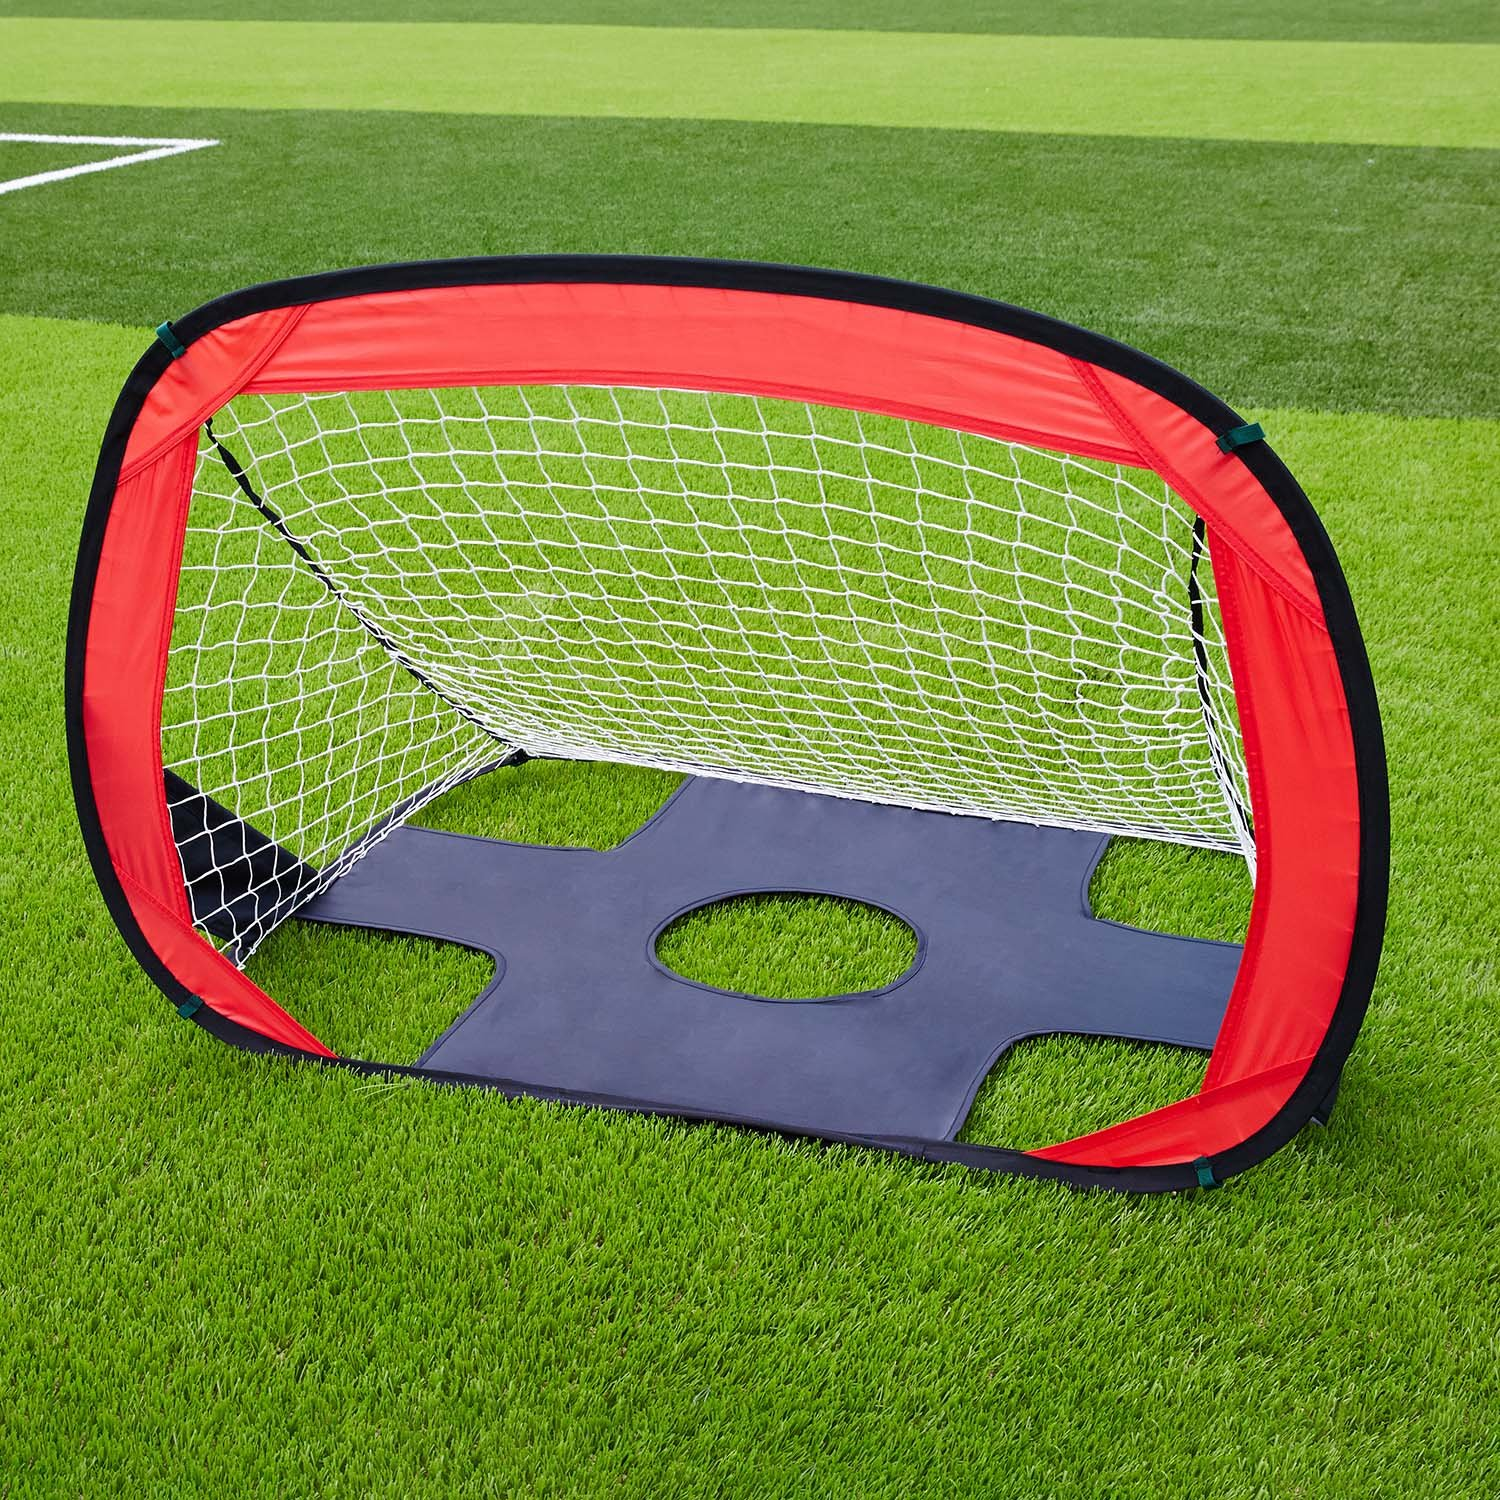 2-in-1 Football Goal, SKL Foldable and Portable Soccer Goal/Quick Up Goal/Pop Up Soccer Goal for kids (43.3''L X 31.5''W)